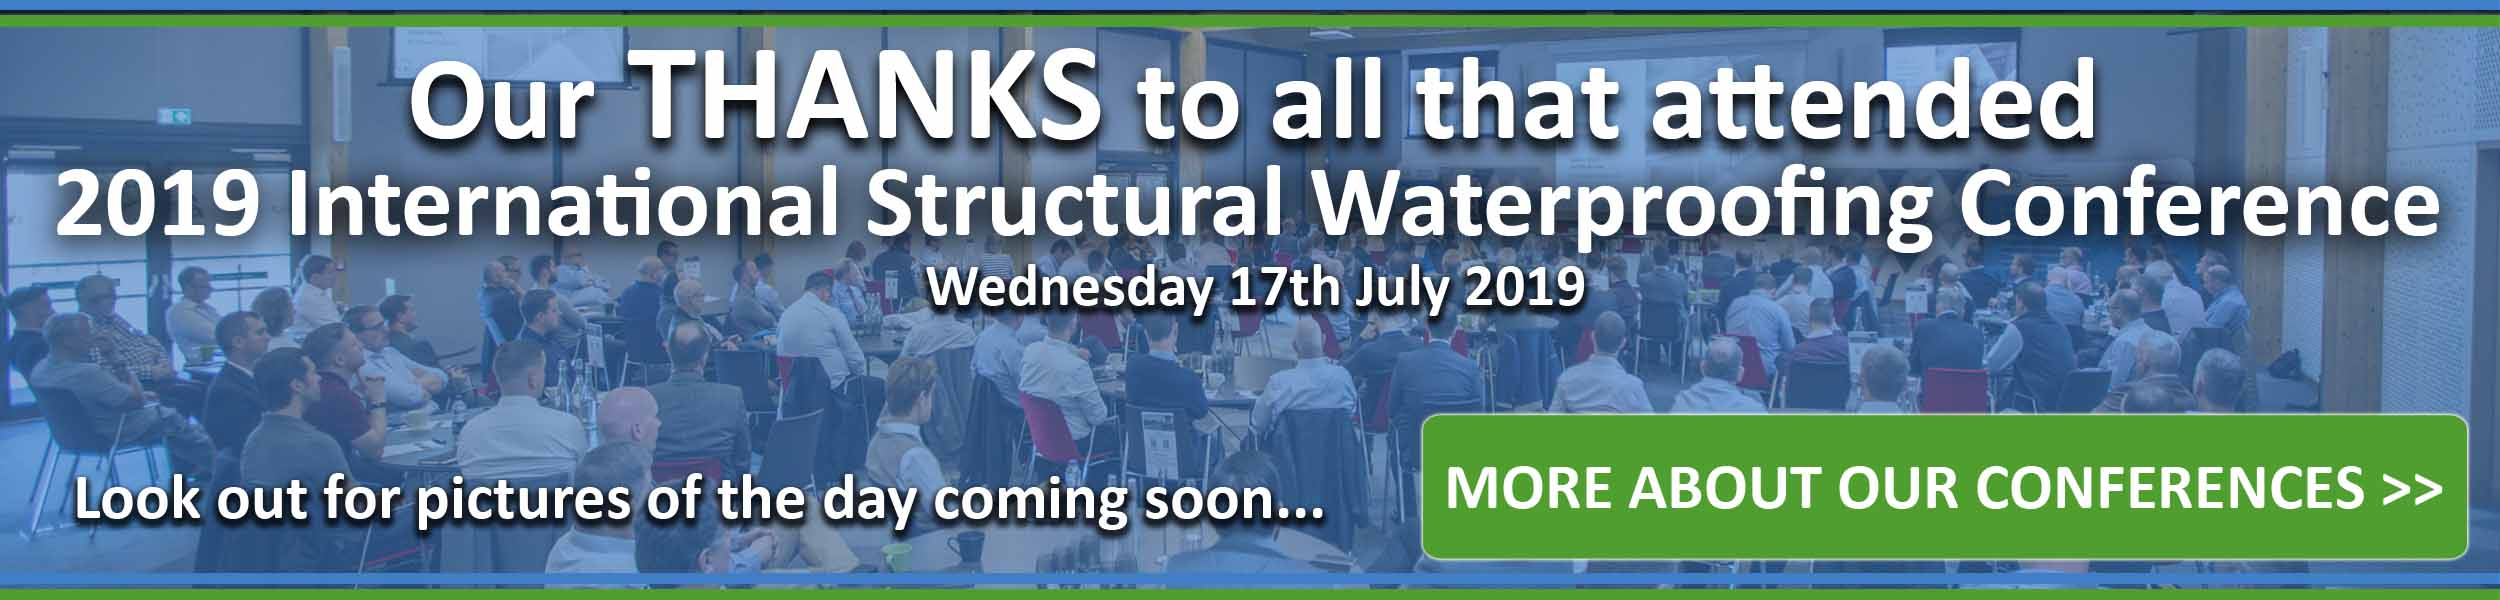 2019 Structural Waterproofing Conference - Thanks to all that attended